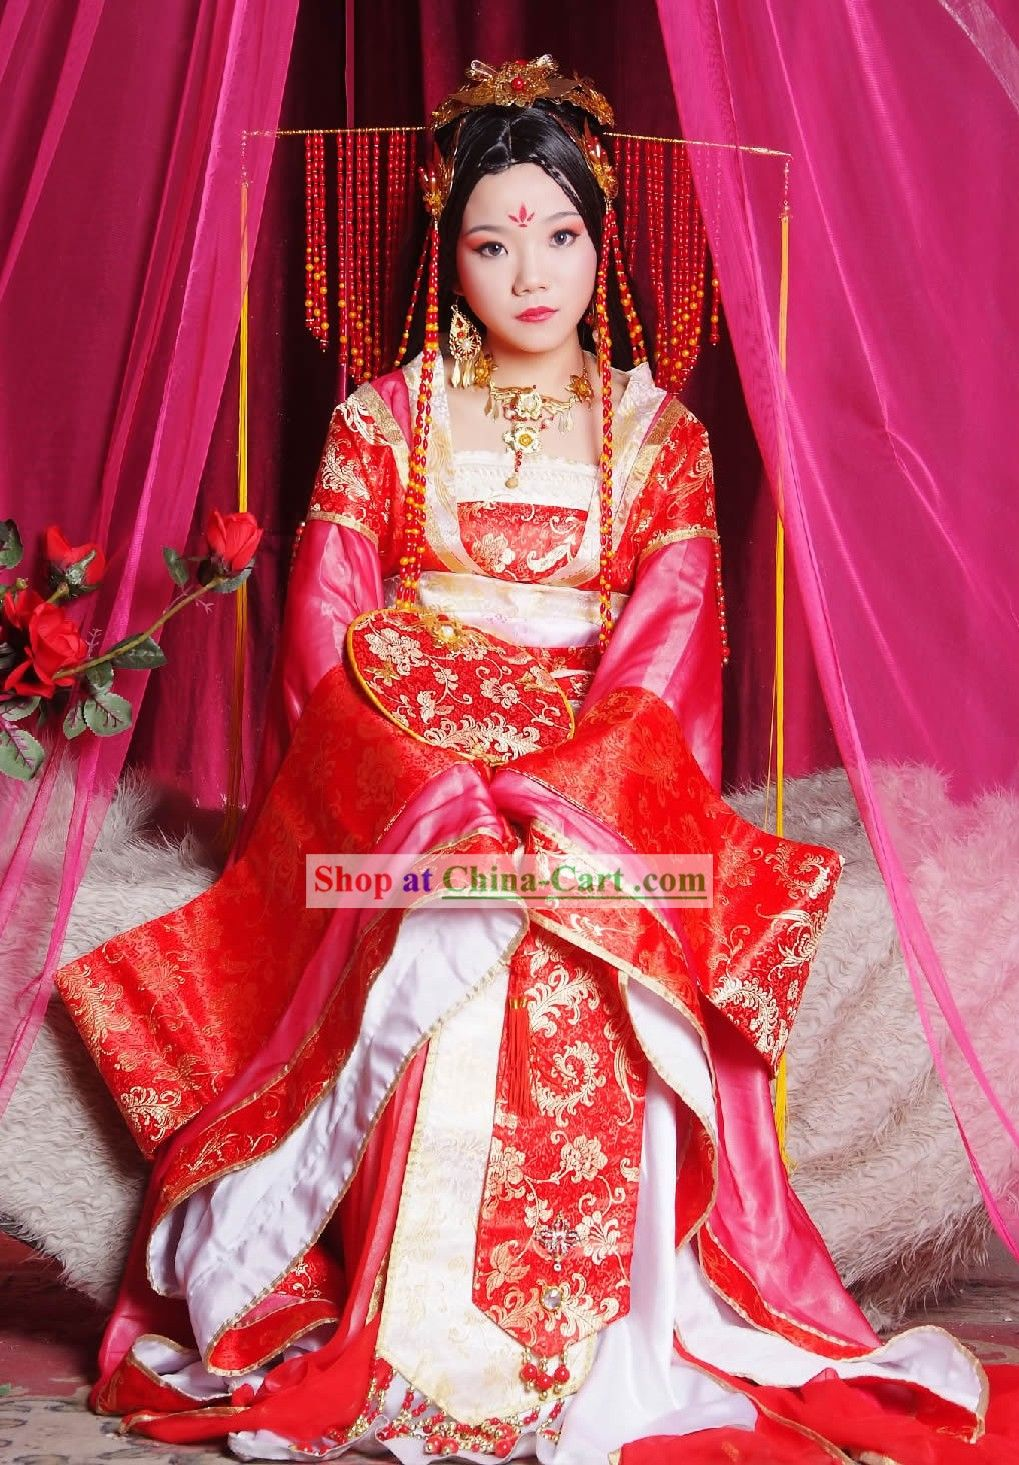 Wedding dresses asia  Chinese  Culture Central and East Asia  Pinterest  Chinese